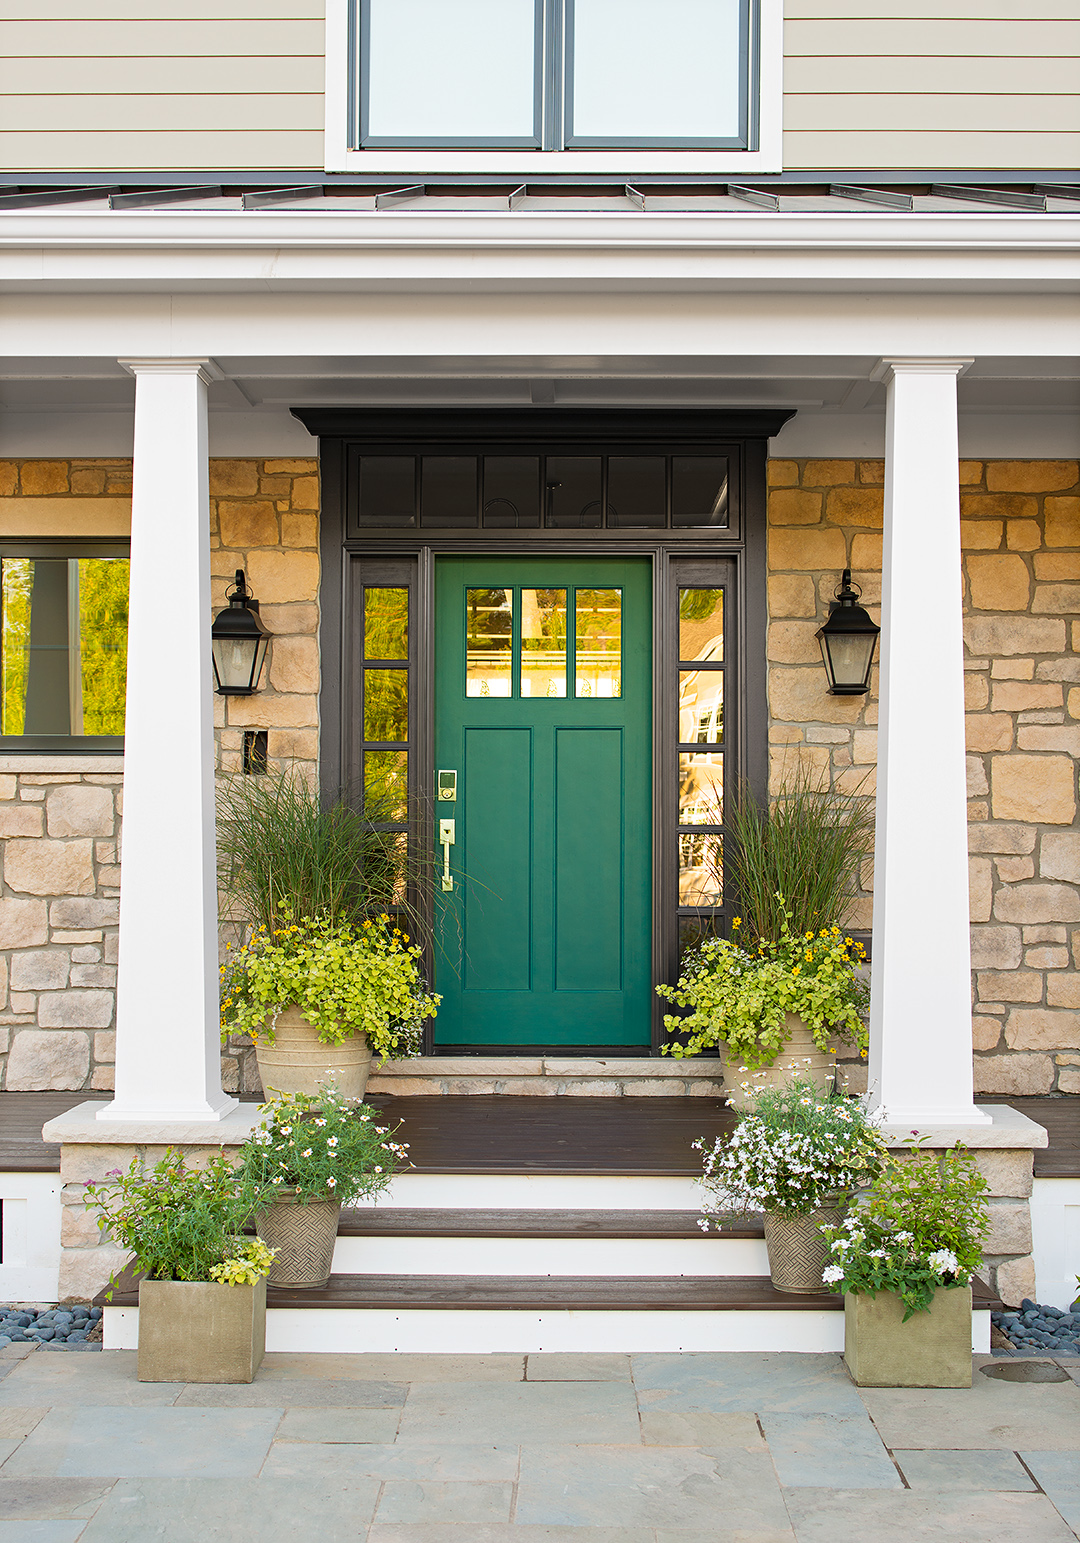 How to Install Front Door Hardware